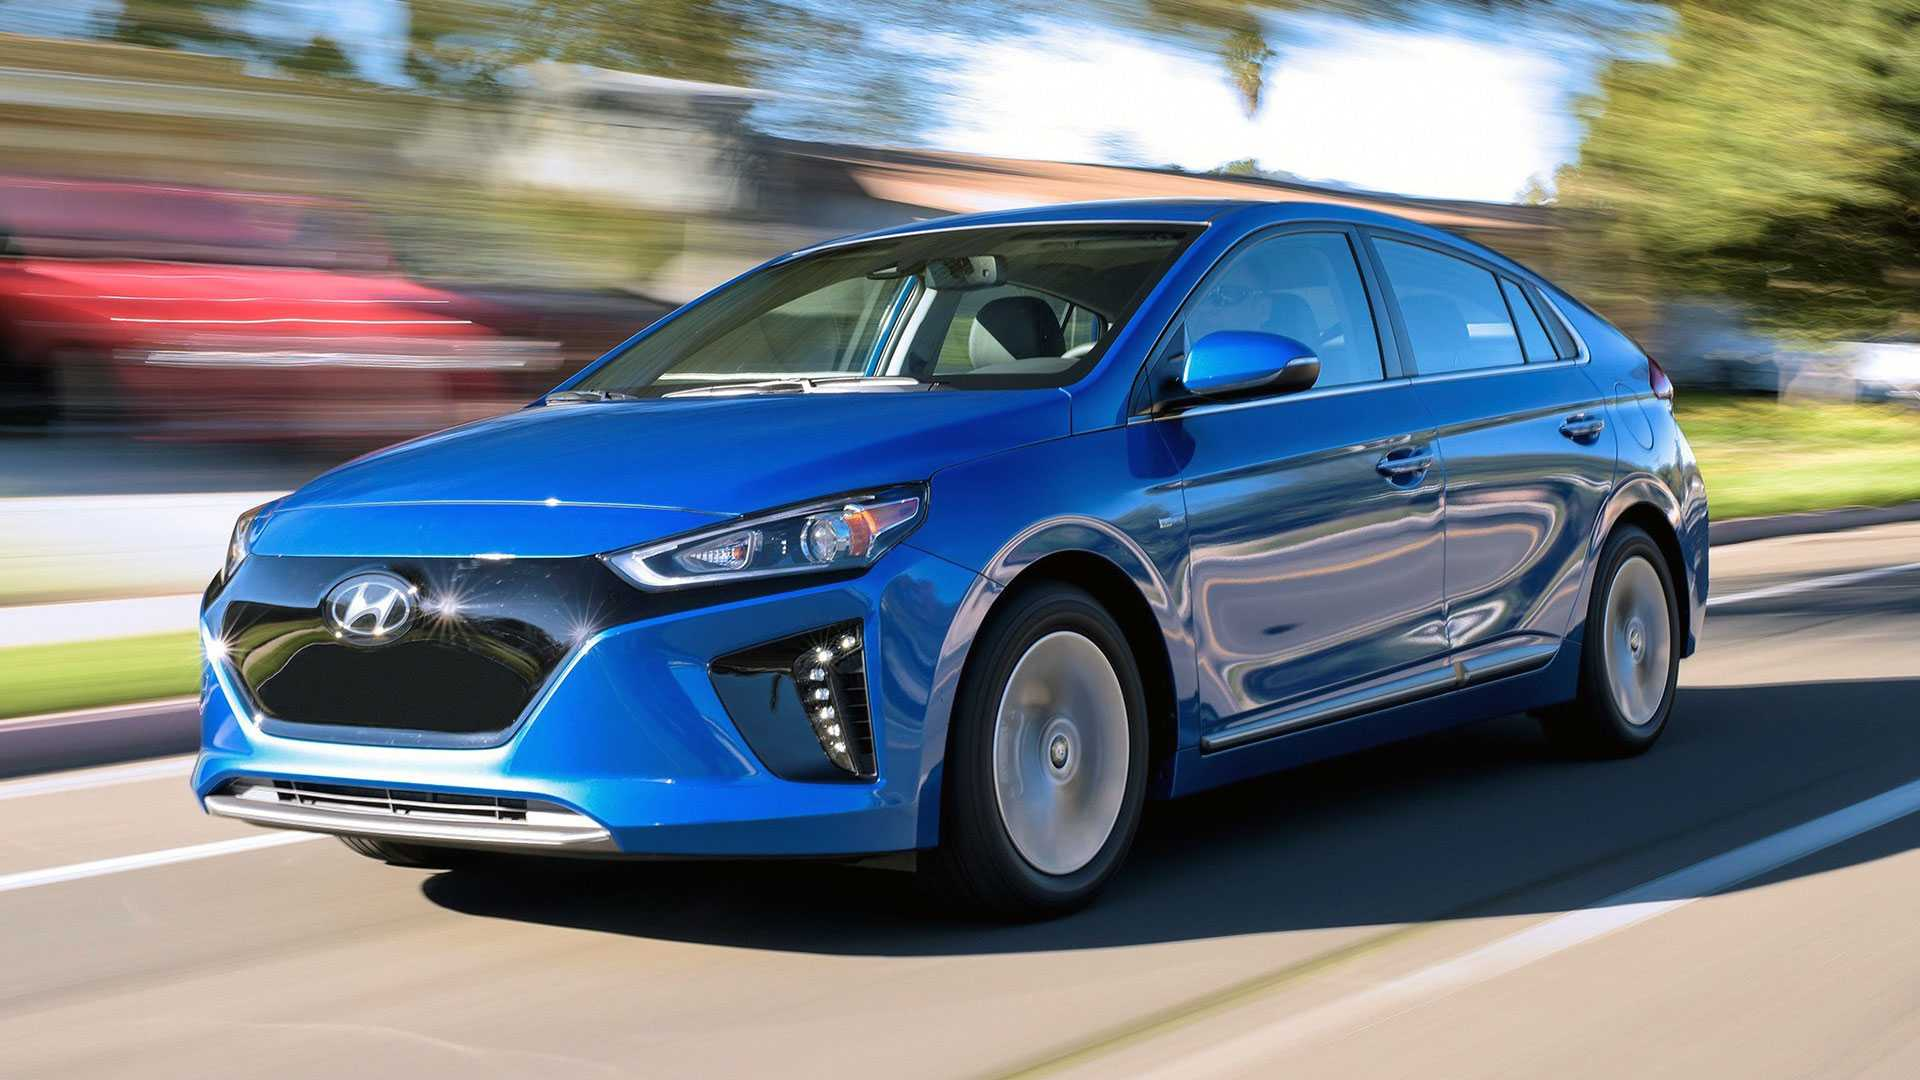 2019 Hyundai IONIQ Electric Gets Price Increase